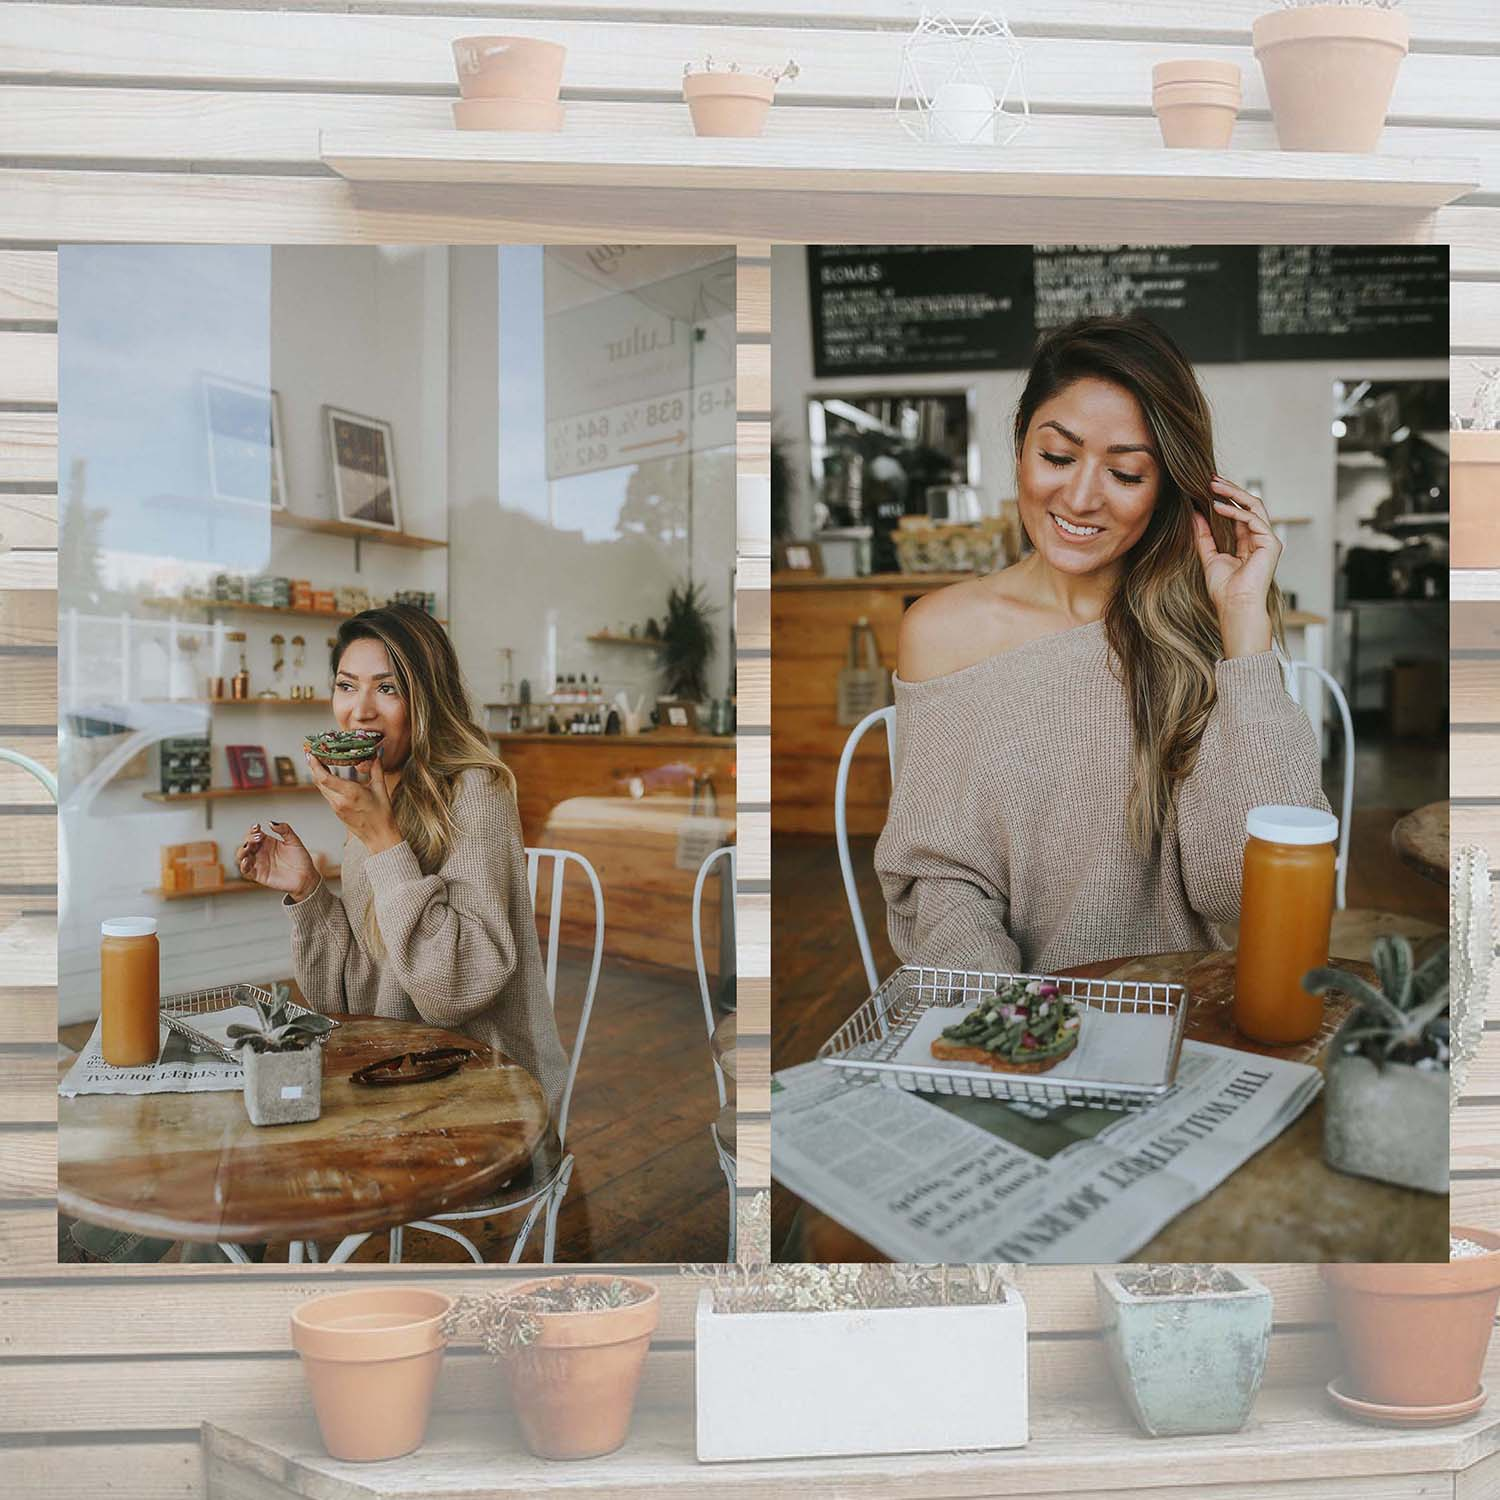 Reflecting 2017, melrodstyle, lucky brand, denim, jeans, breakfast, brunch, reflections 2017, la blogger, street style, style, fashion, latina blogger, mexican blogger, hispanic blogger,